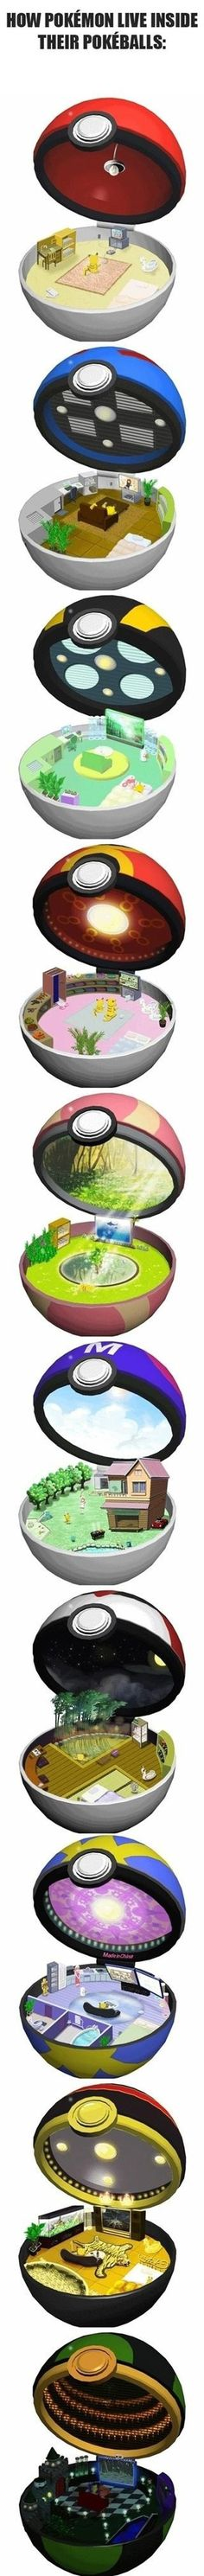 How they live inside Pokéballs